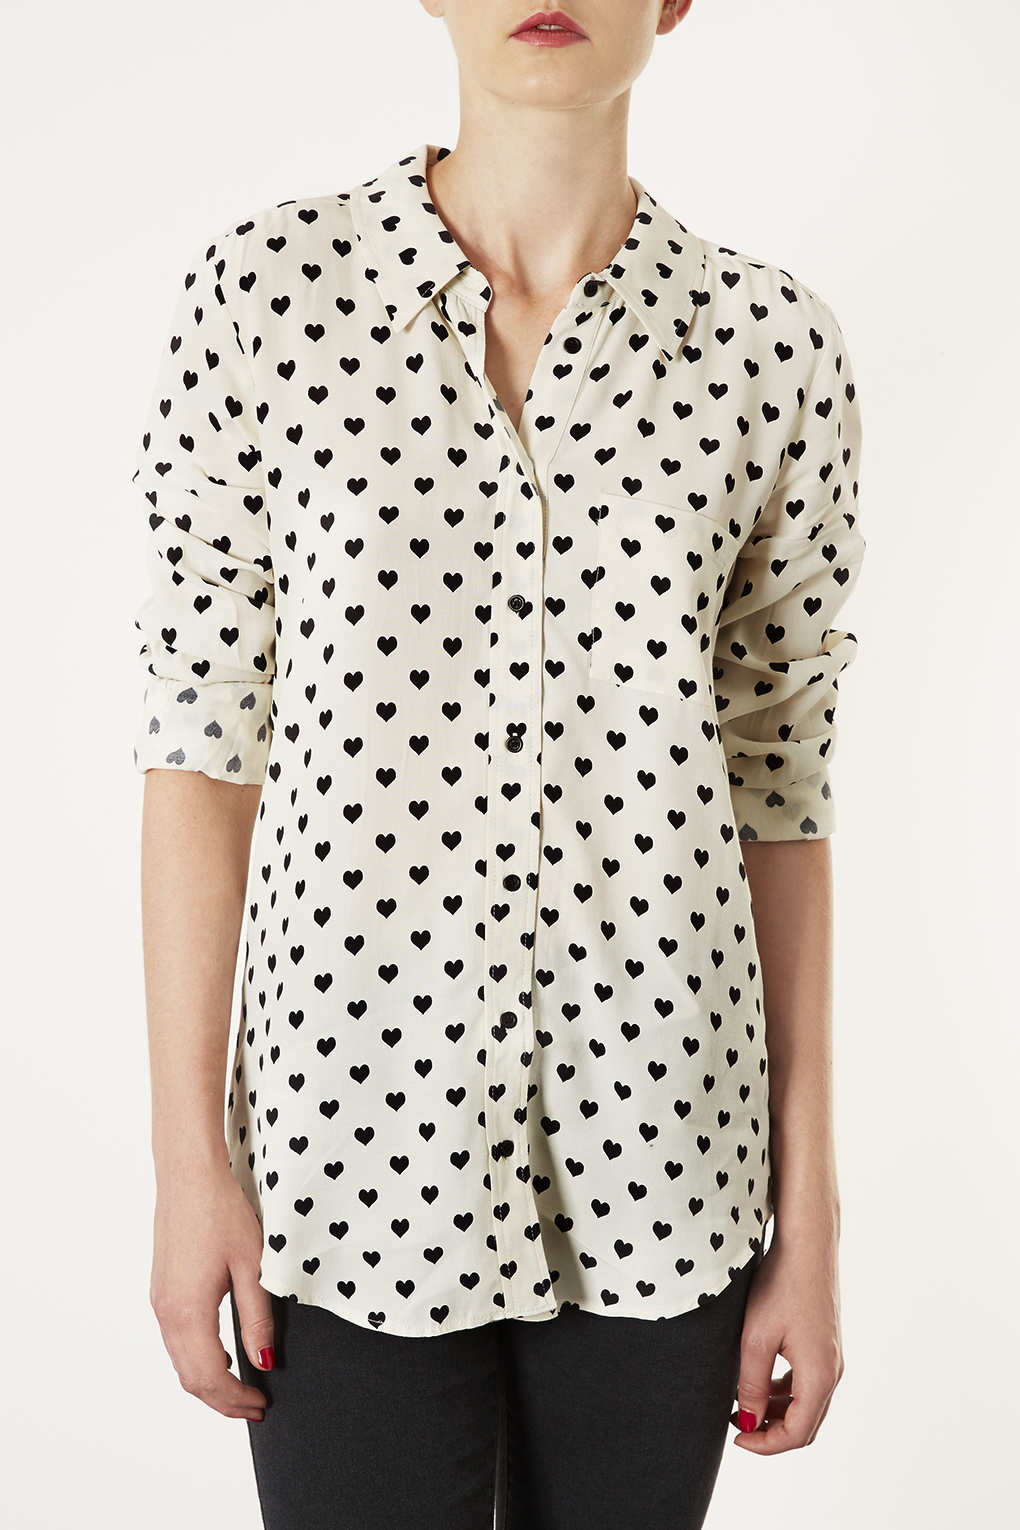 Topshop Long Sleeve Heart Print Shirt In White Lyst